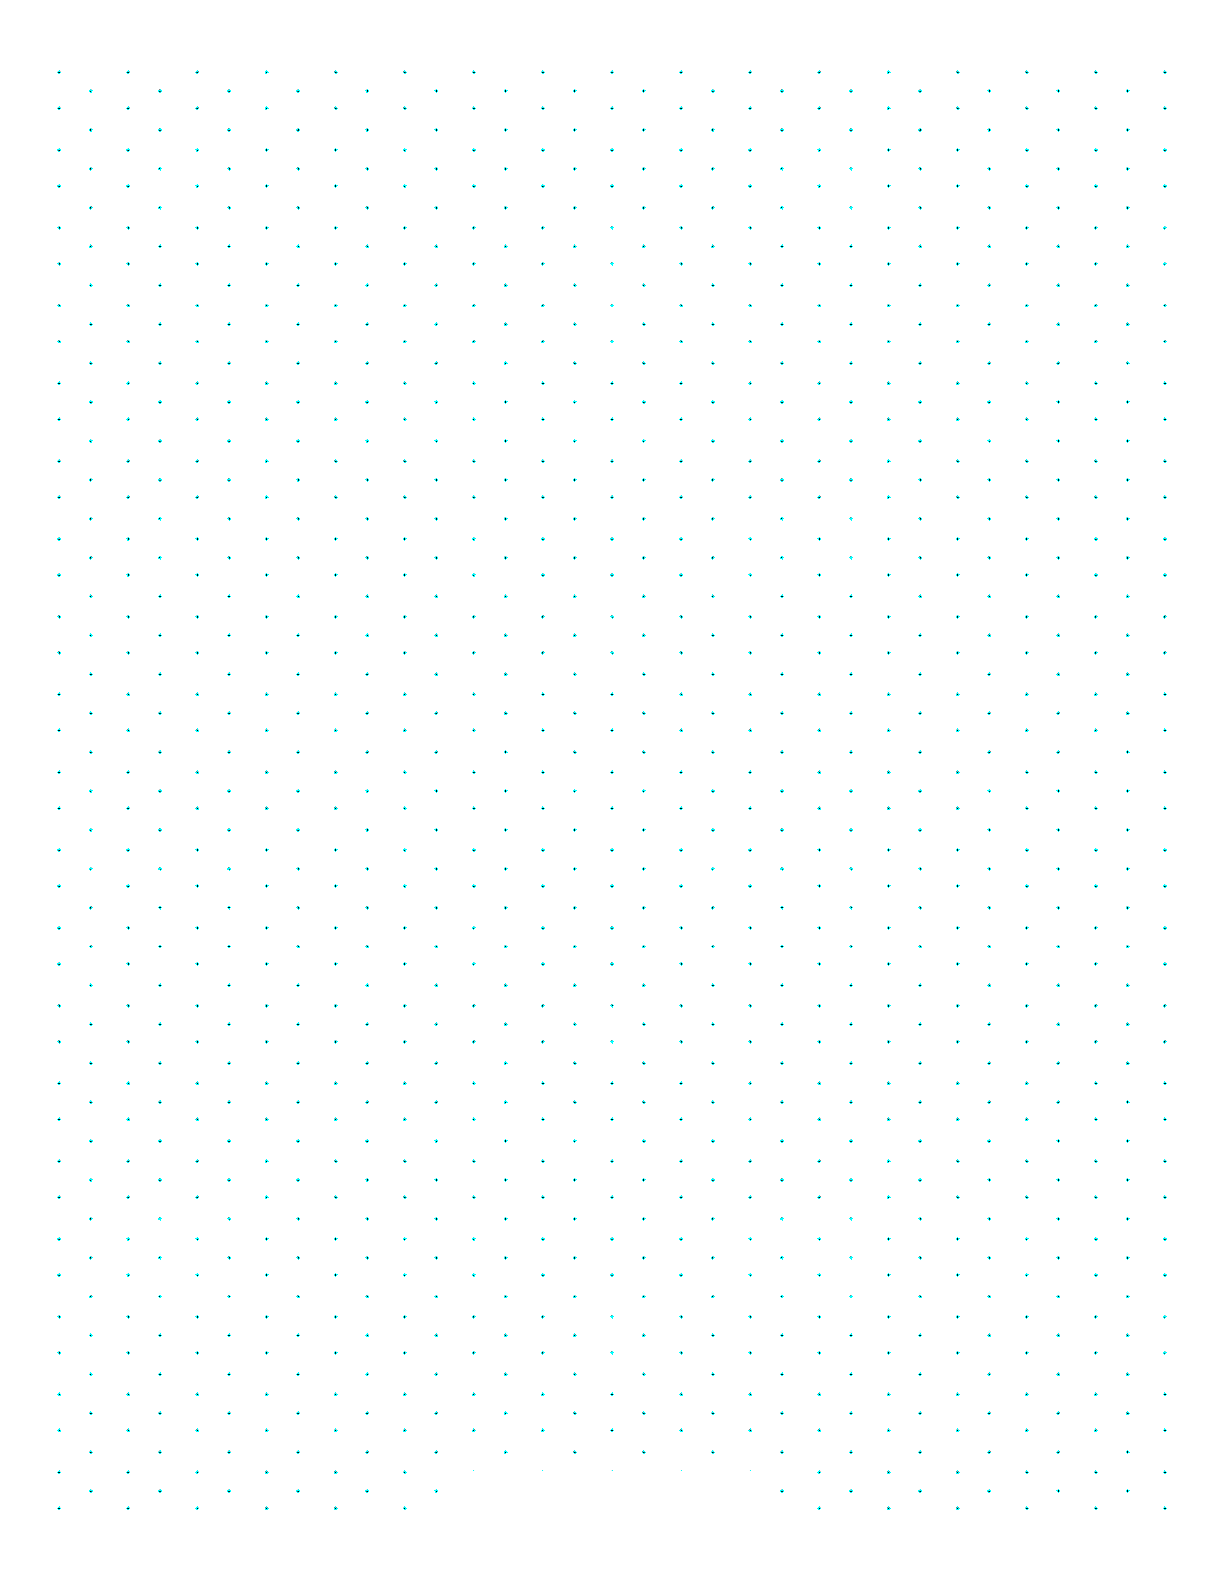 Isometric Dot Paper Very Fine Free Download